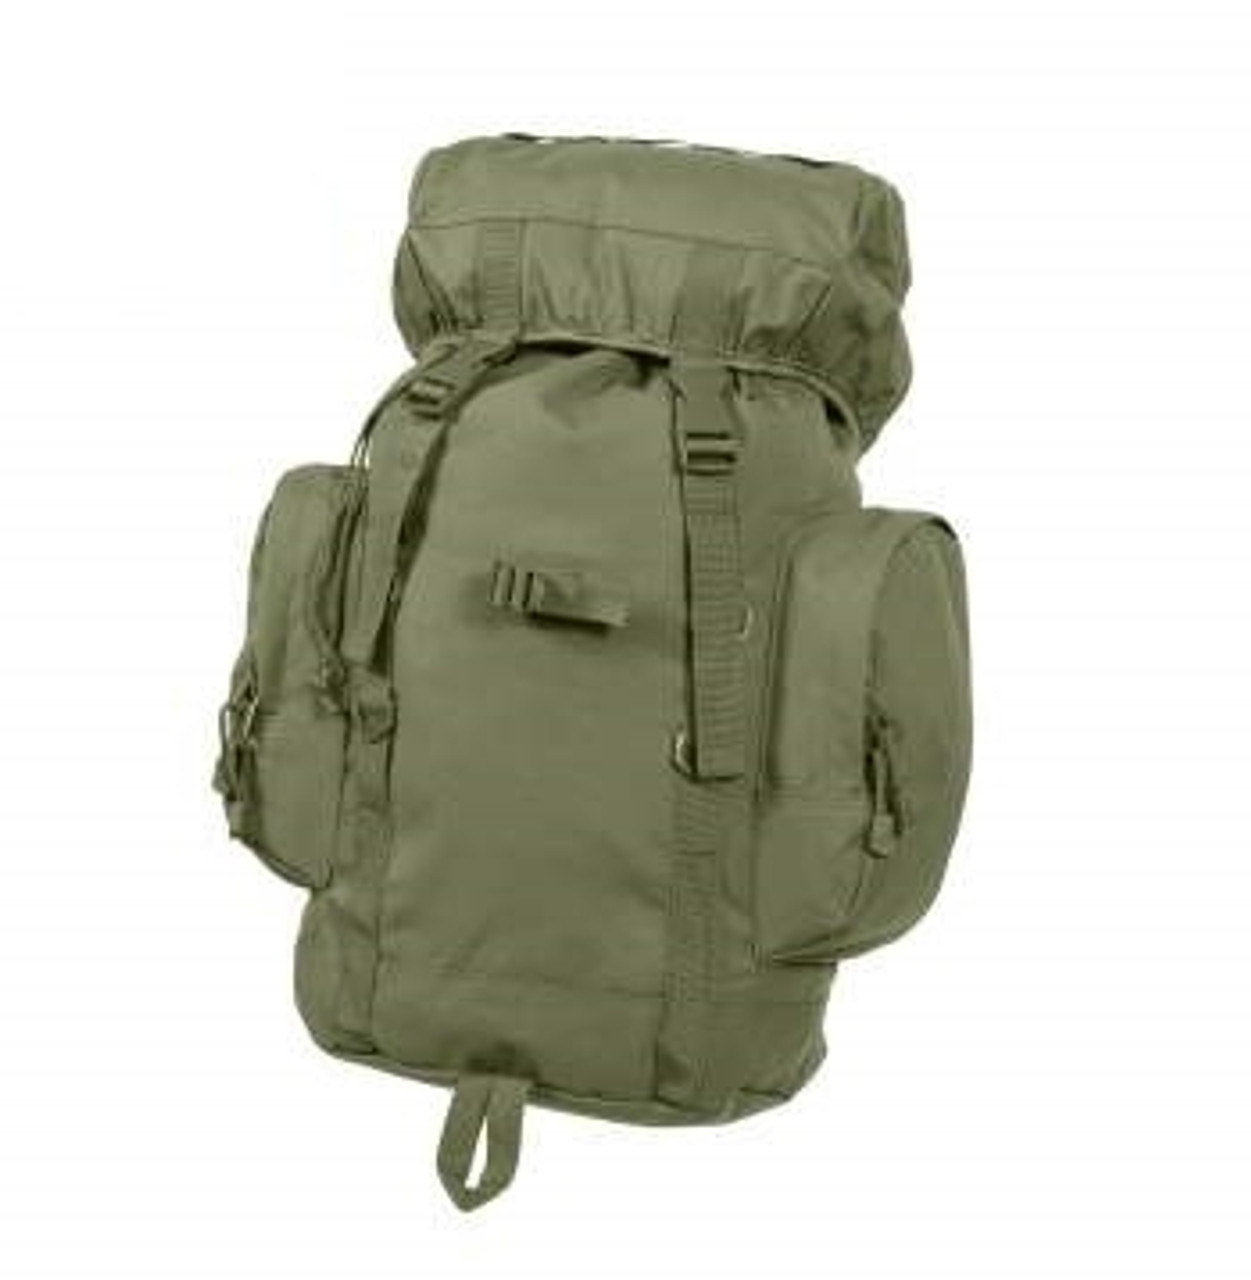 25L Tactical Backpack from Hessen Antique